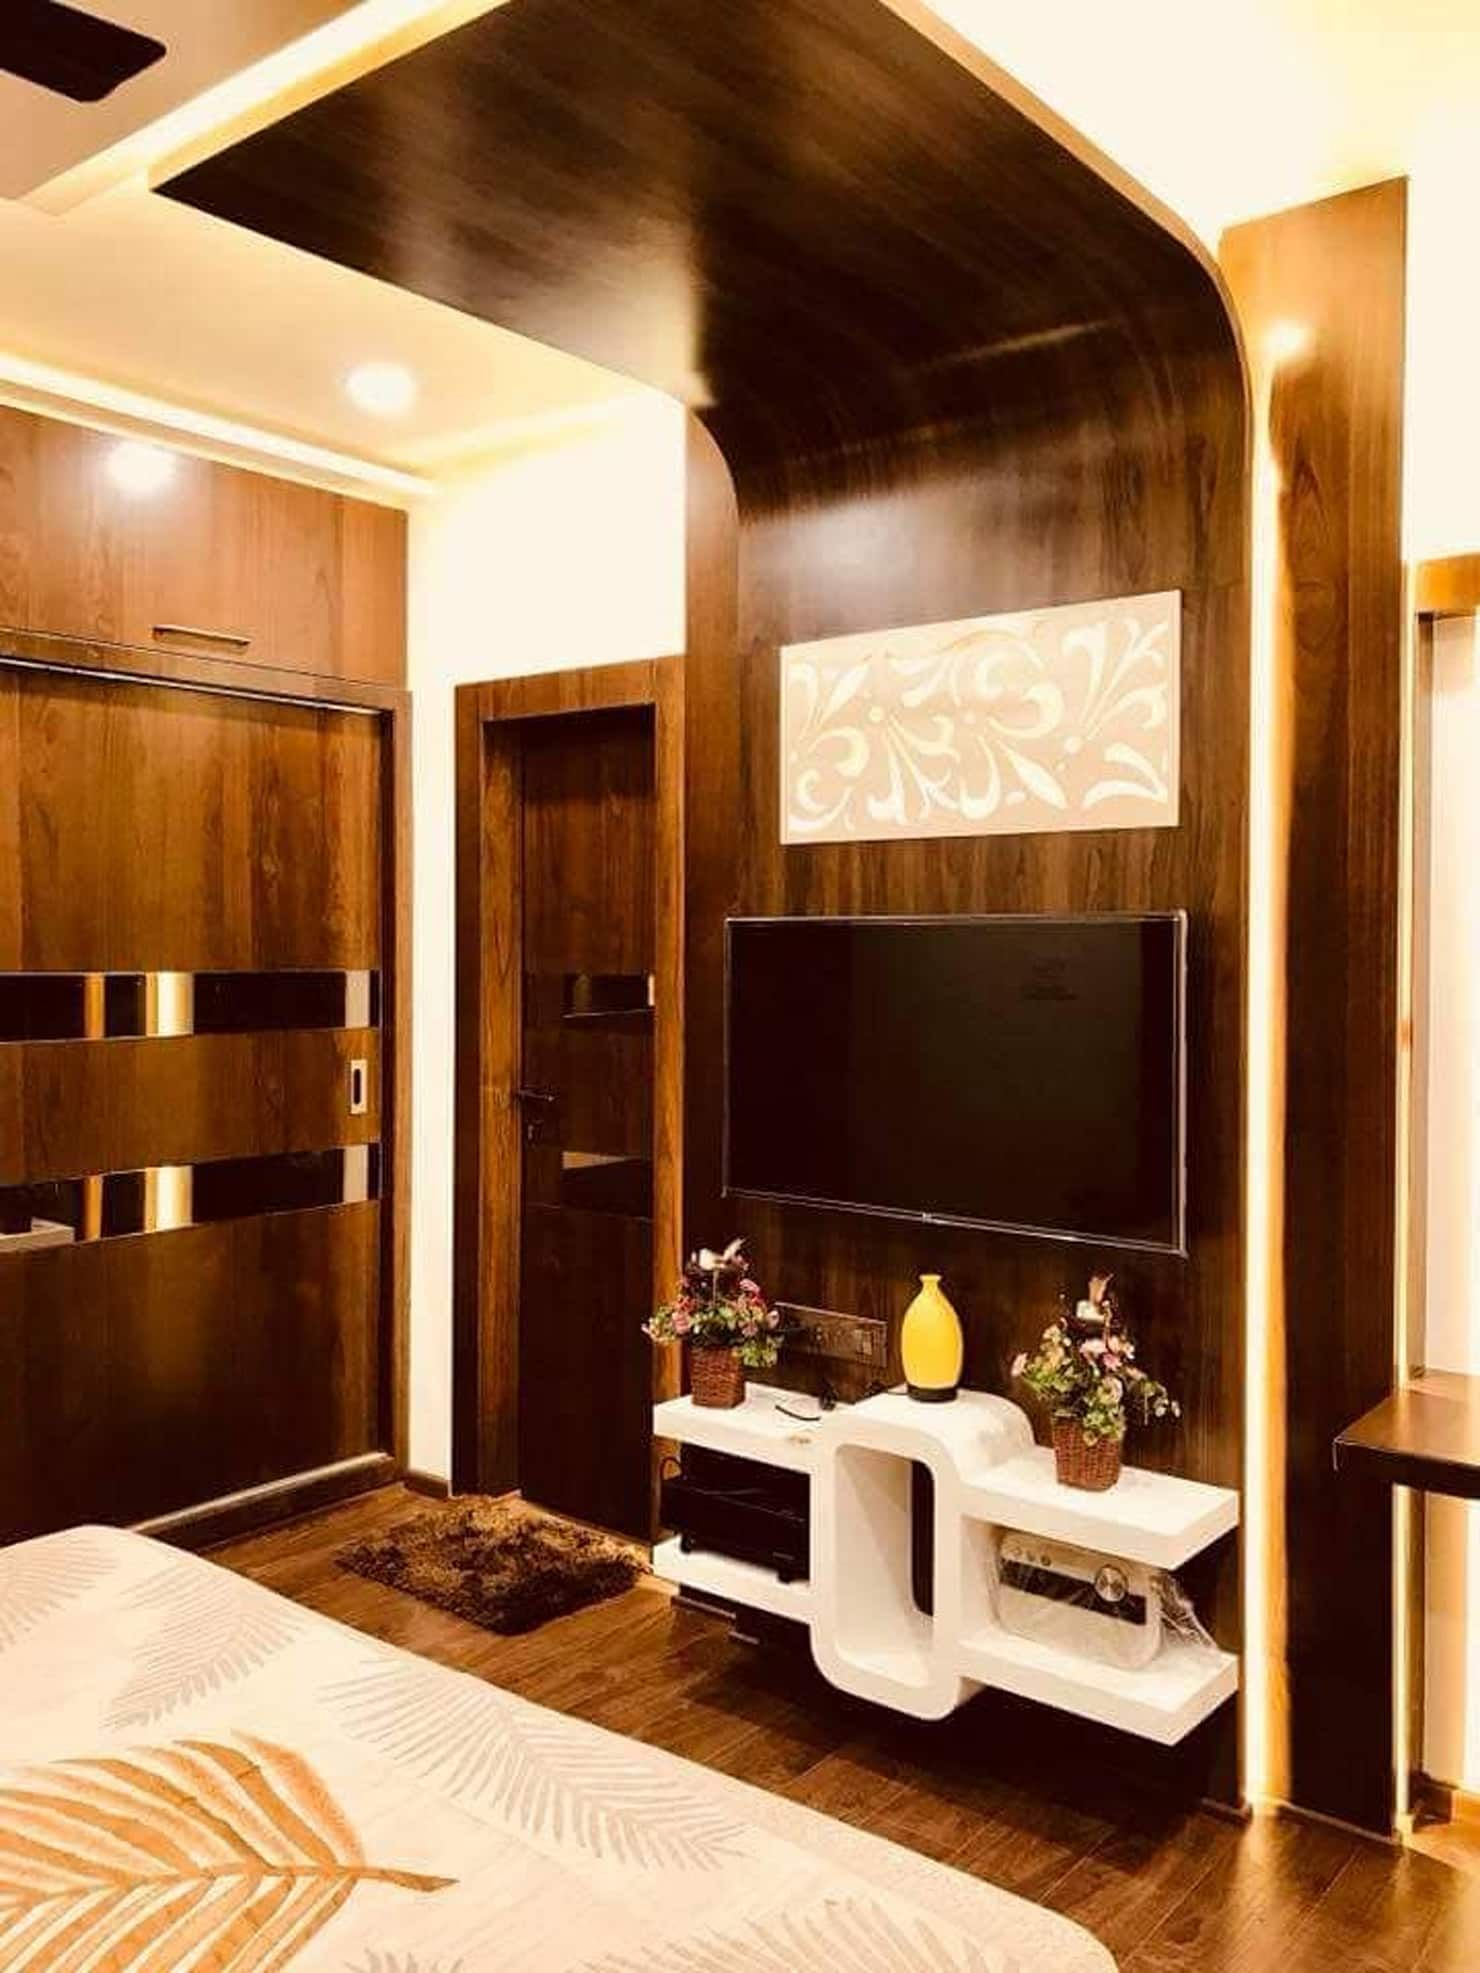 Lcd Panel Design Interior: Interiors Asian Style Bedroom By Swastik Architects Asian